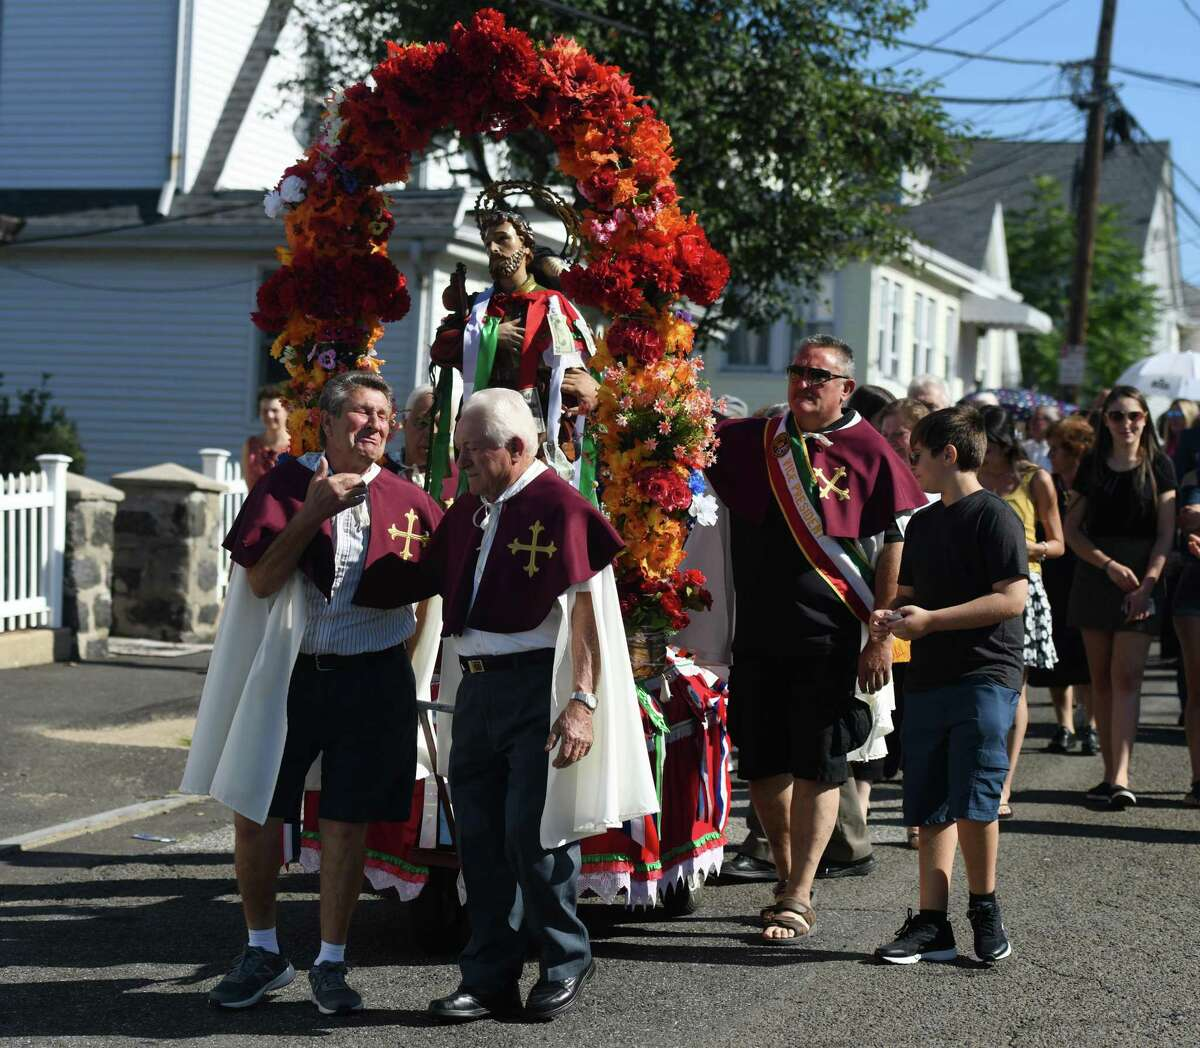 Pietro Pennella, left, of Port Chester, N.Y., and Guiseppe Pennella, of Harrison, N.Y., lead the the 110th annual St. Roch Church procession through the streets in the Chickahominy section of Greenwich, Conn. Sunday, Aug. 11, 2019. To close out the Feast, the church paid tribute to St. Roch with a procession featuring a statue of St. Roch and music from the Dixie Dandies. Onlookers crowded the streets and pinned money to ribbons on the statue as the procession made its way through town.